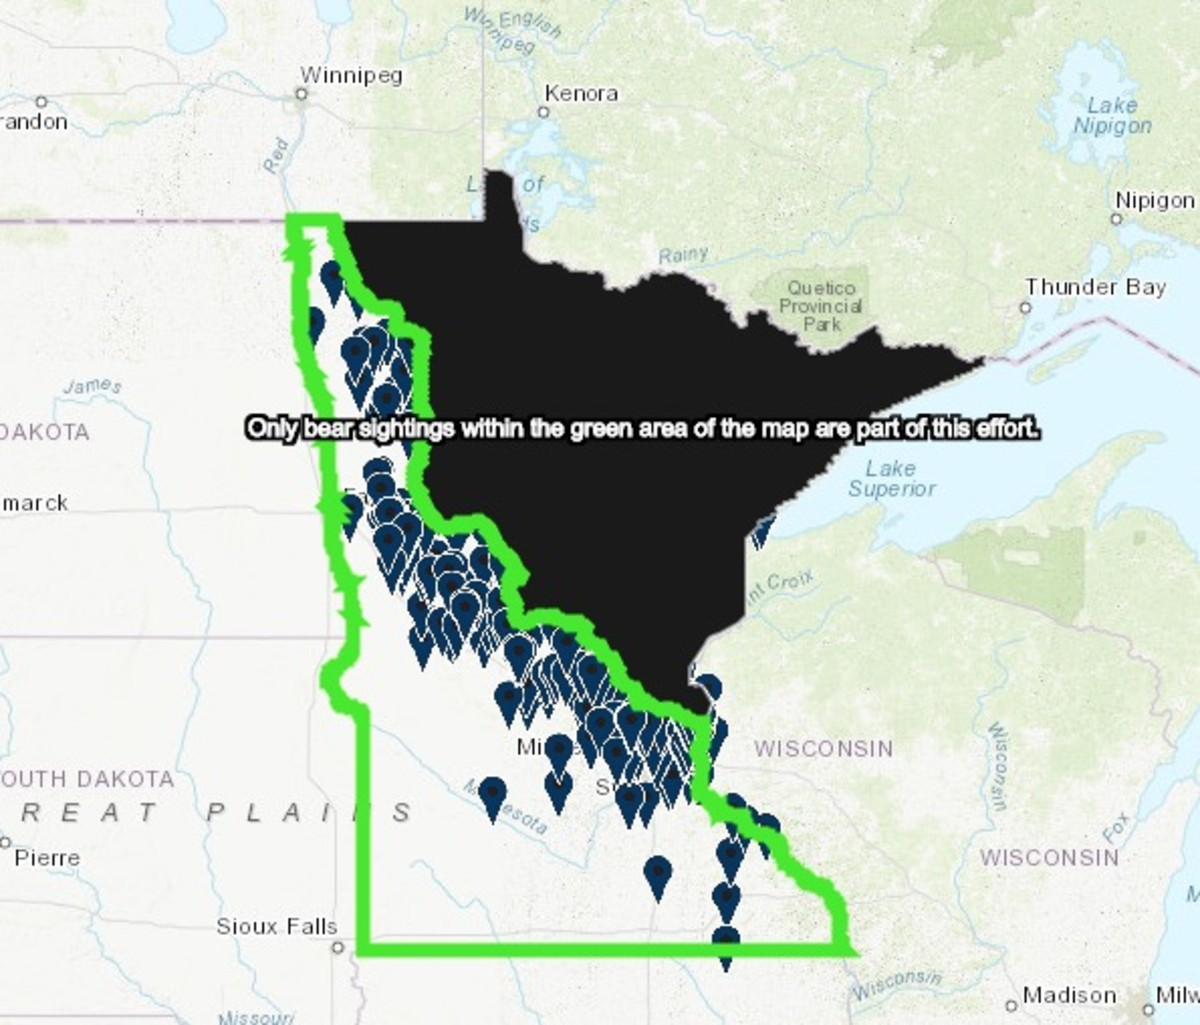 Bear sightings inside the green box are part of a DNR study. Areas in black, which woudl include Fosston, are where bears are more commonly seen.